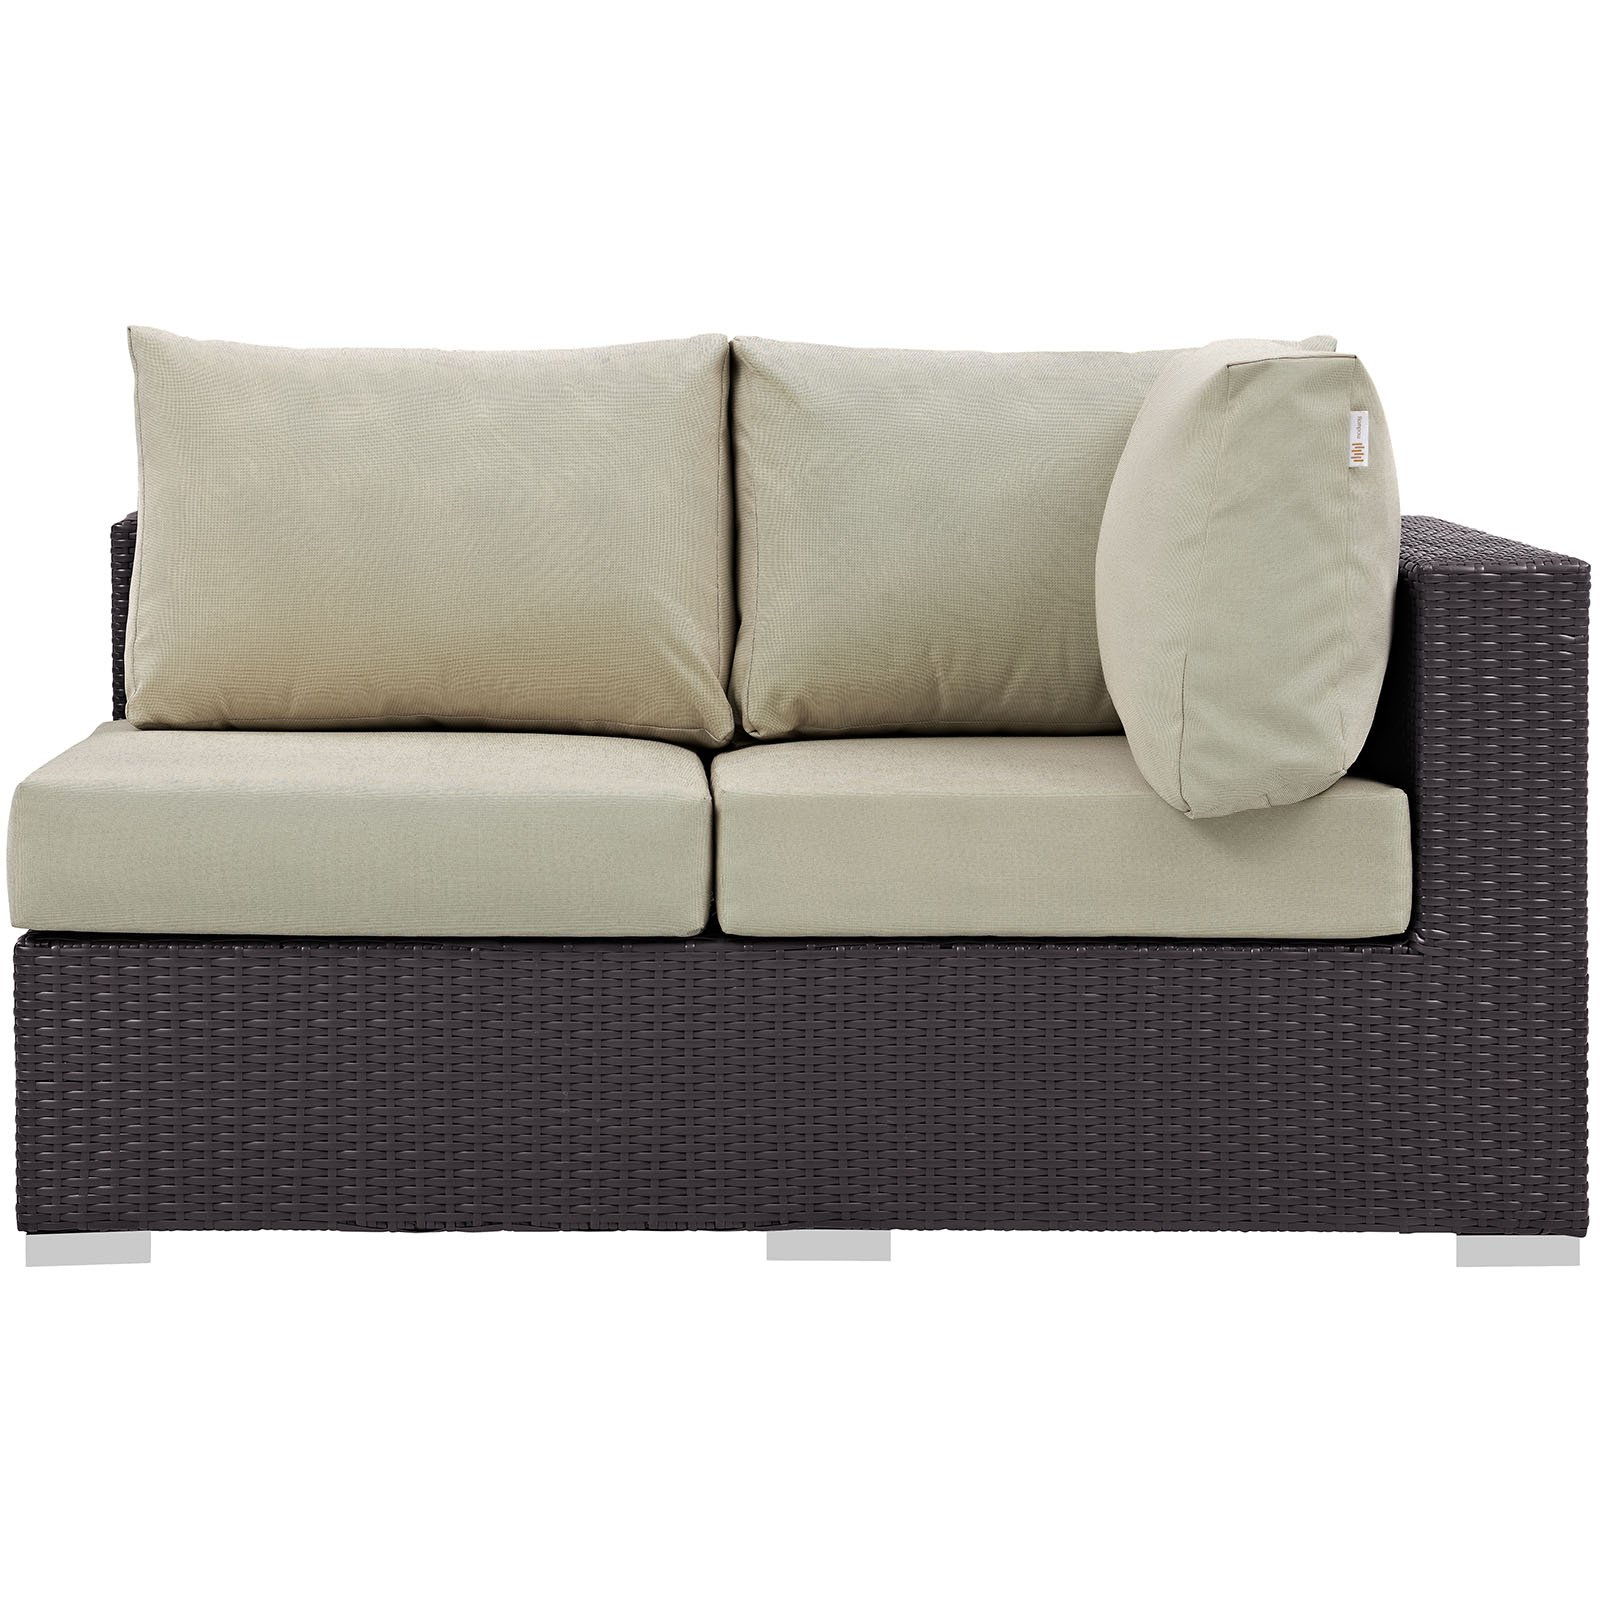 Modway Convene Outdoor Patio Right Arm Loveseat, Multiple Colors